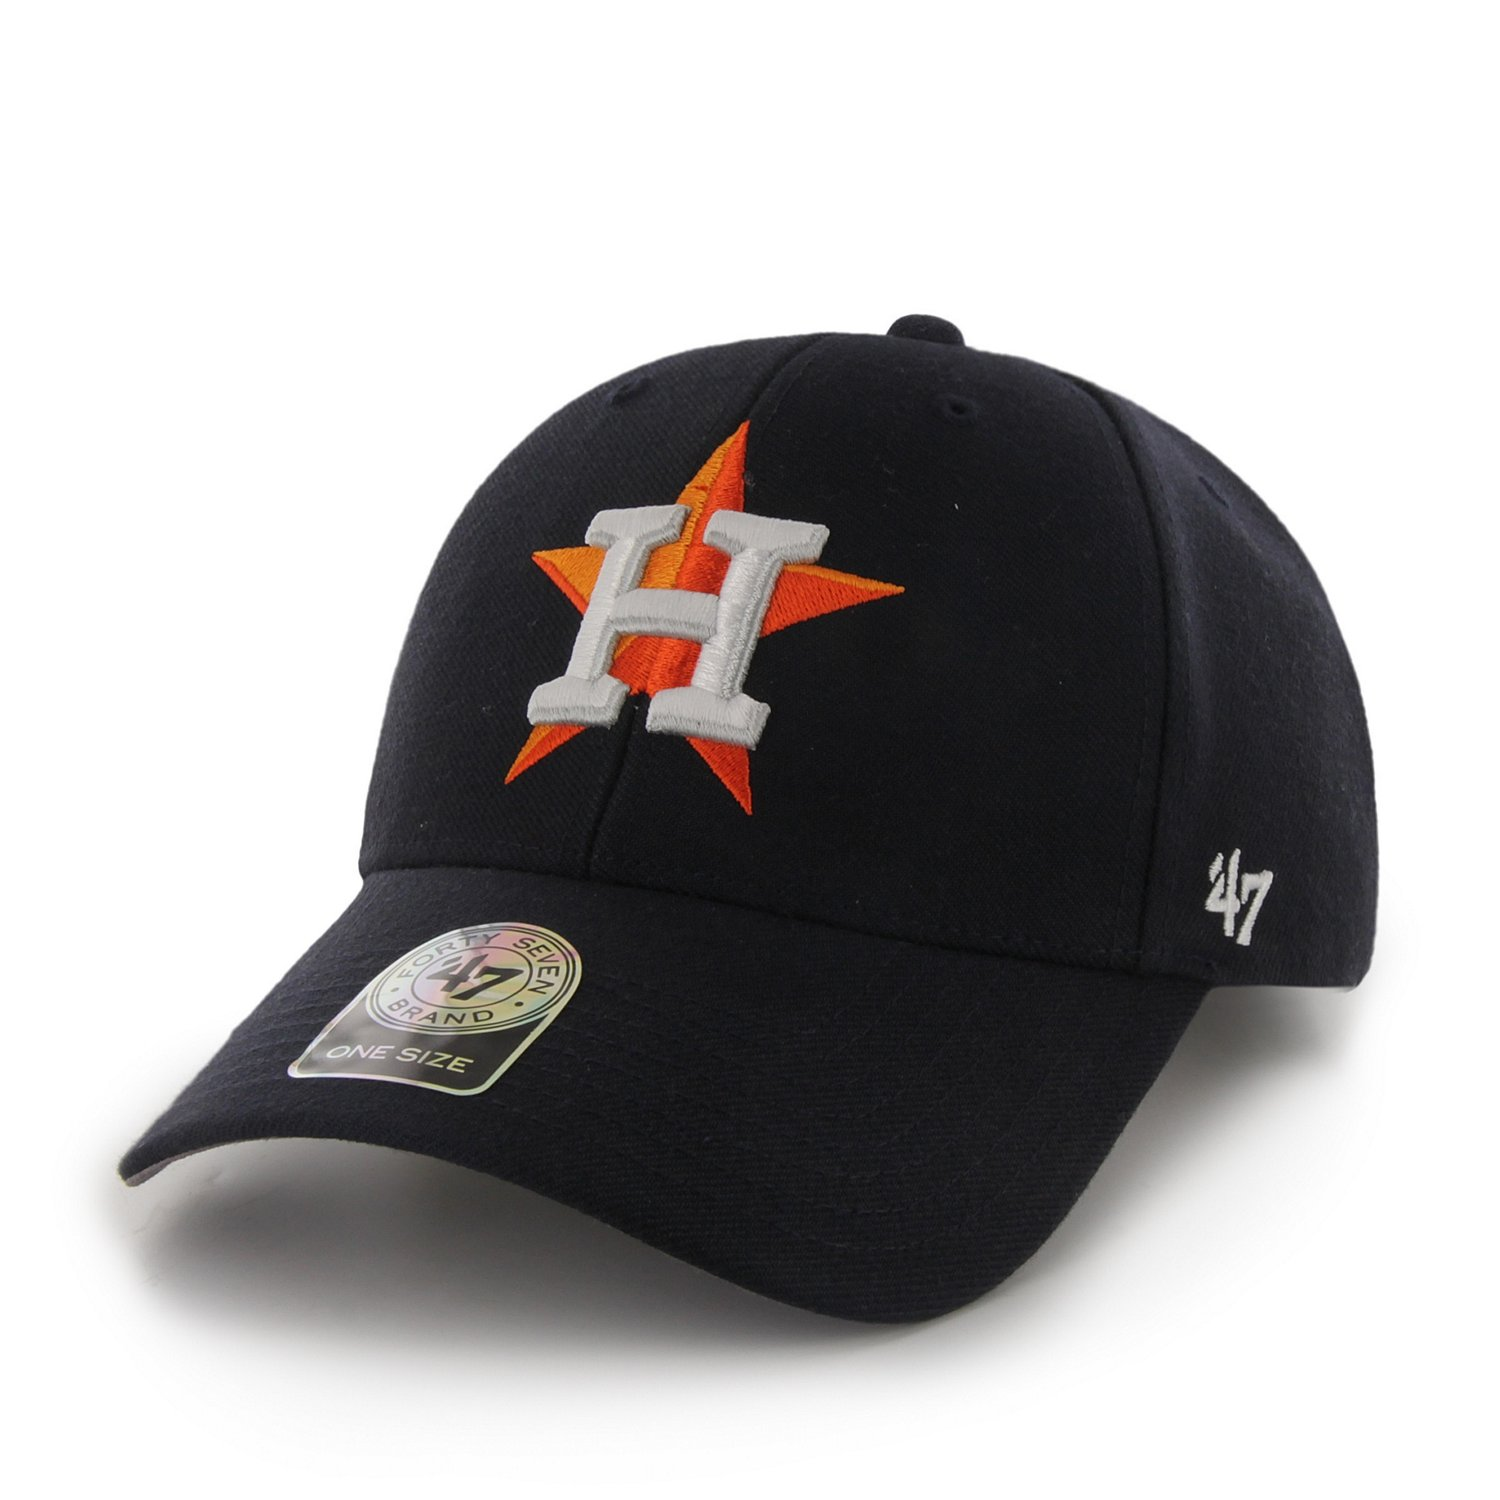 04ec2d57 Houston Astros Hats | Houston Astros Caps, Houston Astros Visors ...